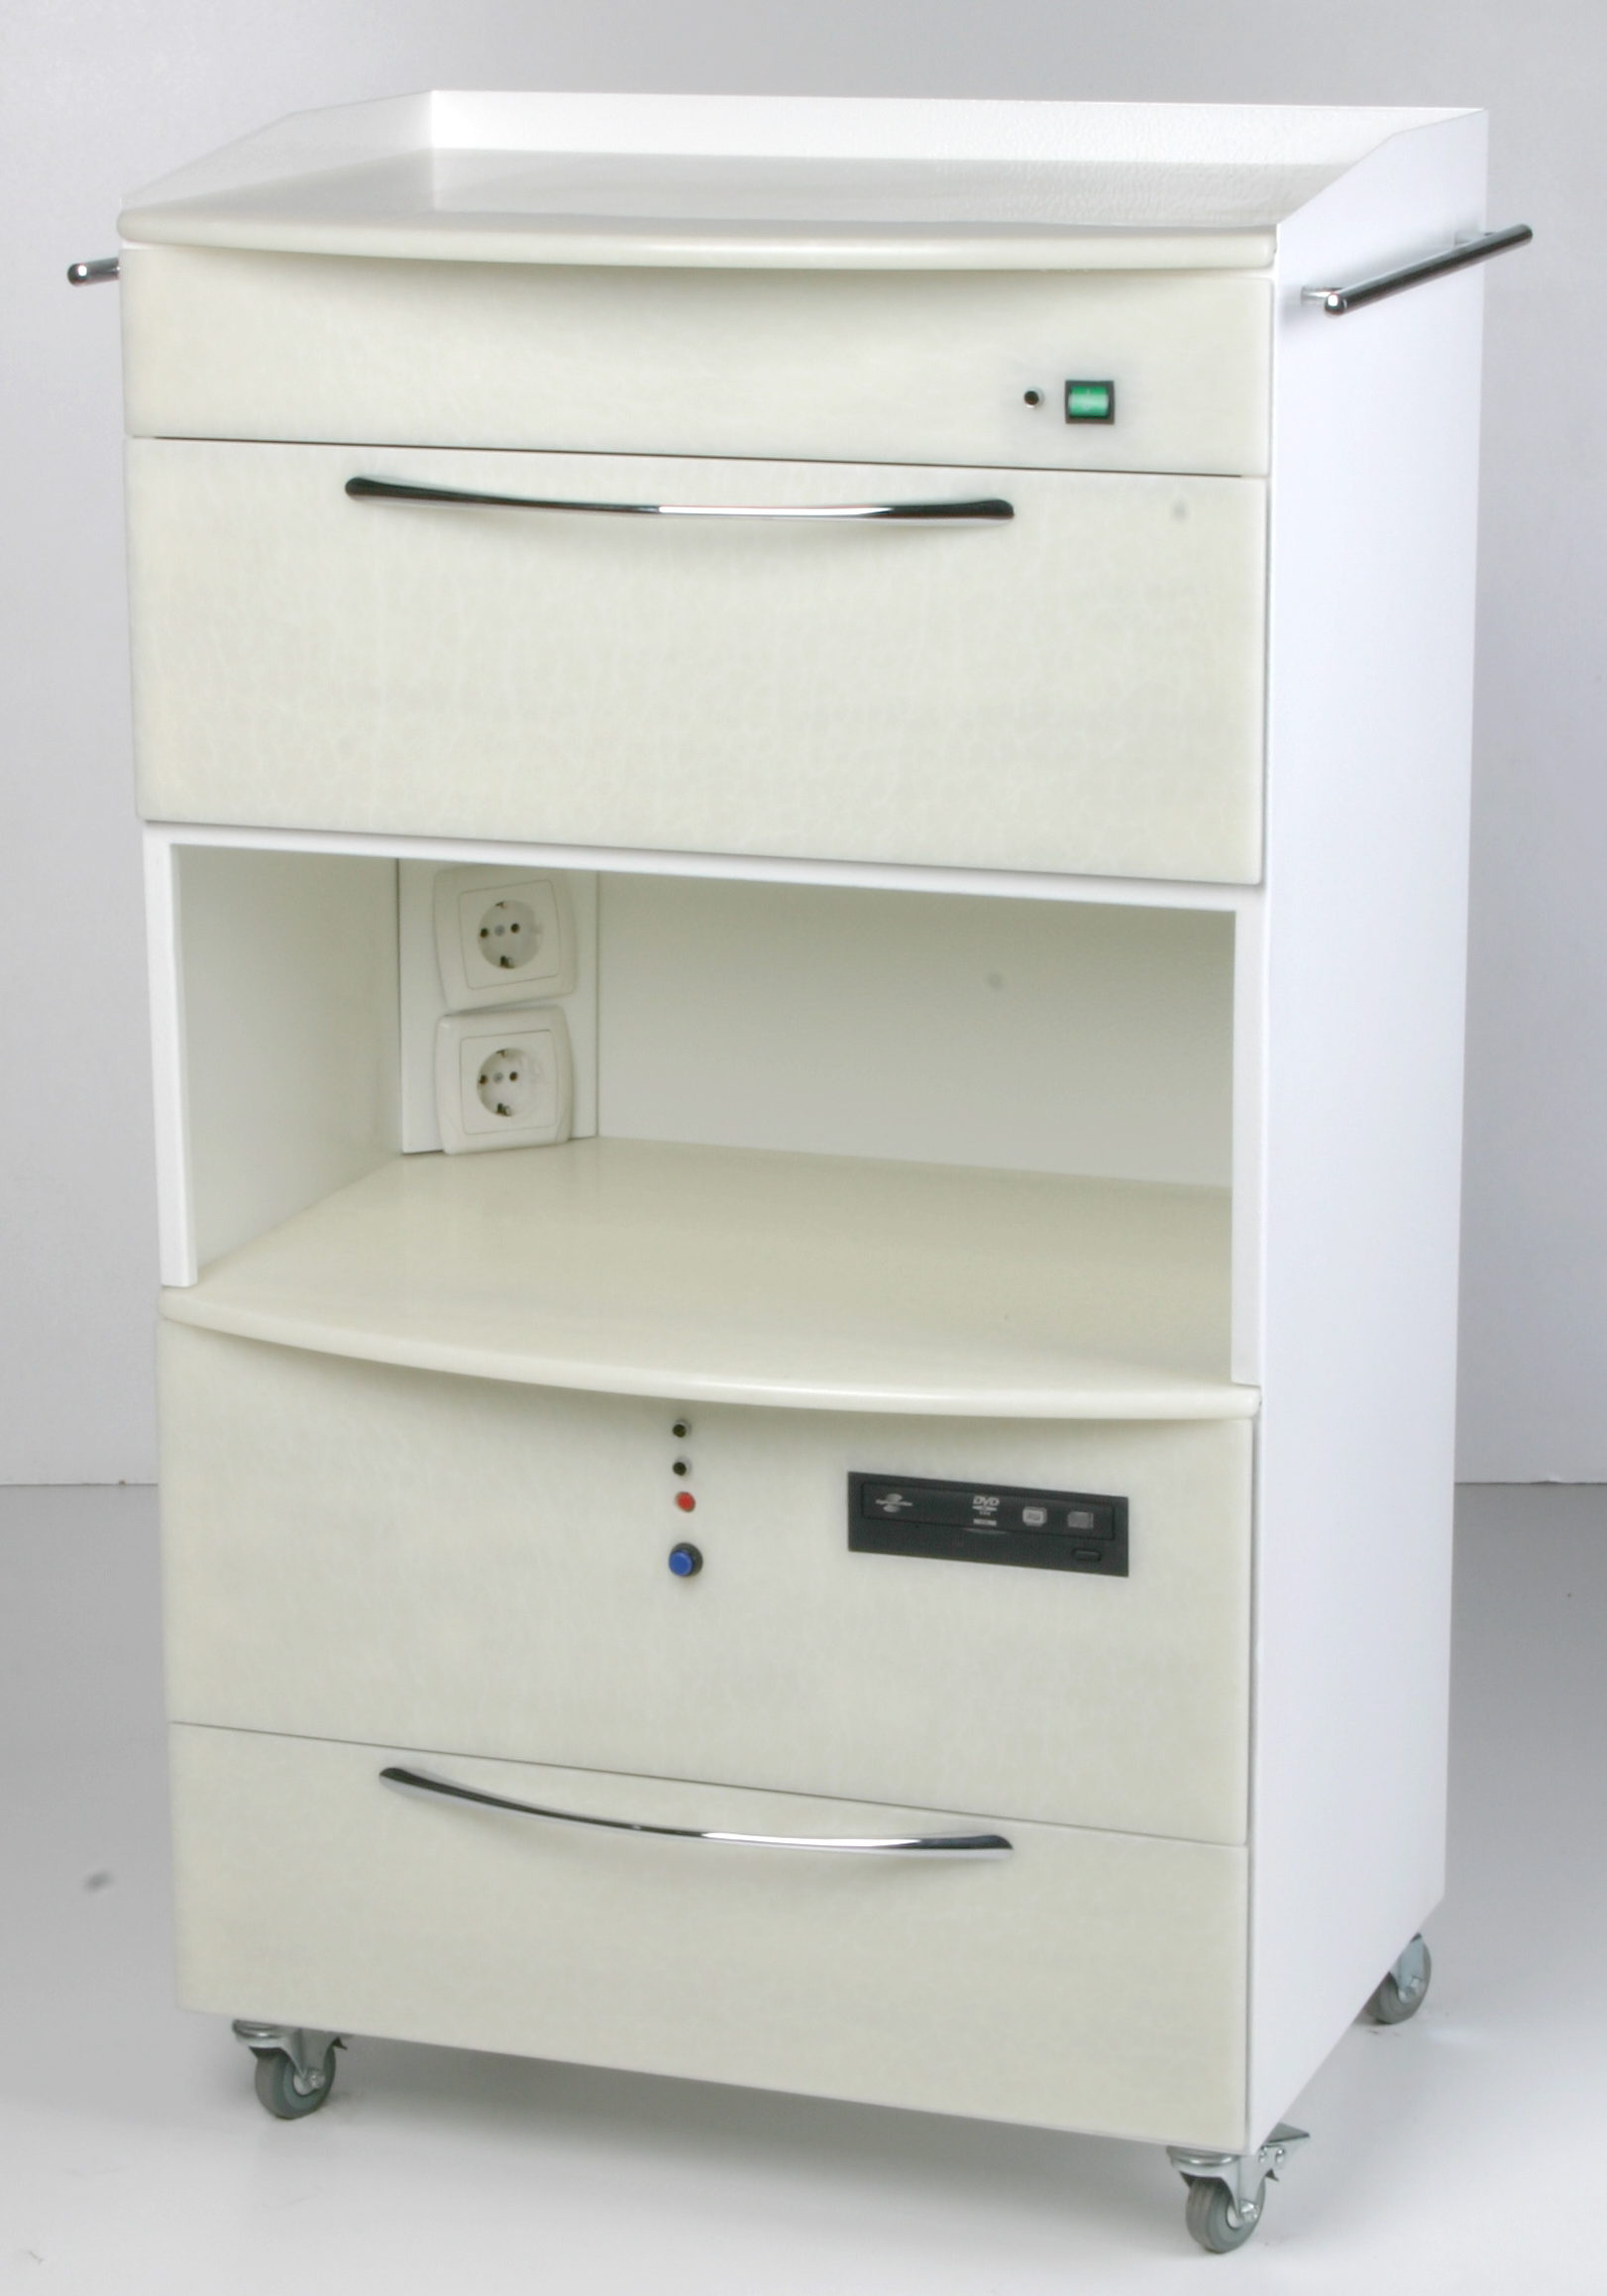 MASTER SHIMMA mobile cabinet with UV chamber and PC. The upper part of  the cabinet is PANMED-7 UV irradiation chamber. The lower part is the cabinet for PC. The upper and middle shelves are intended for medical instruments.